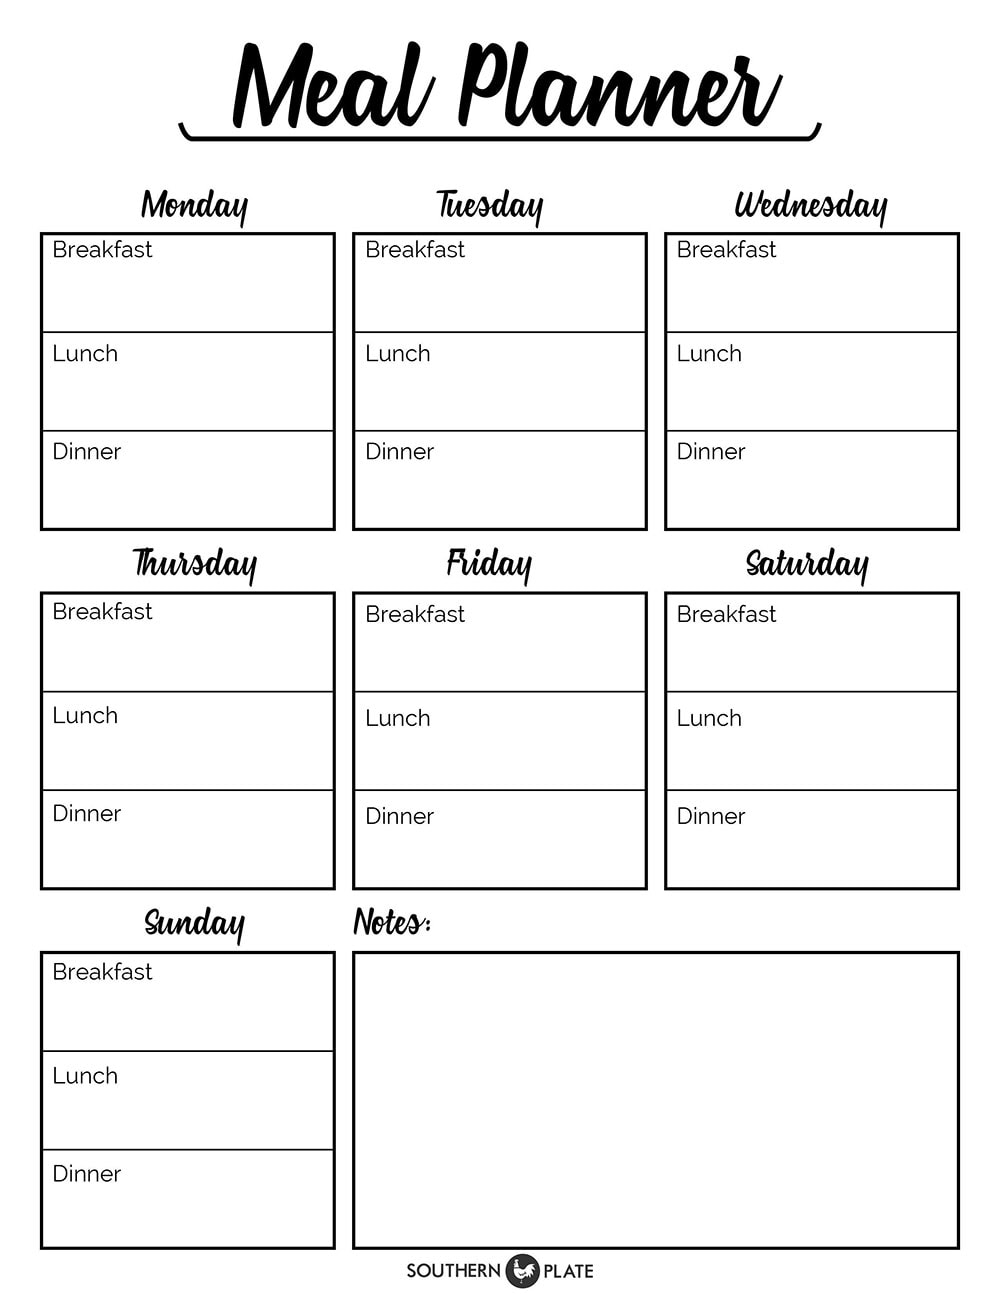 Weekly meal planner for your home